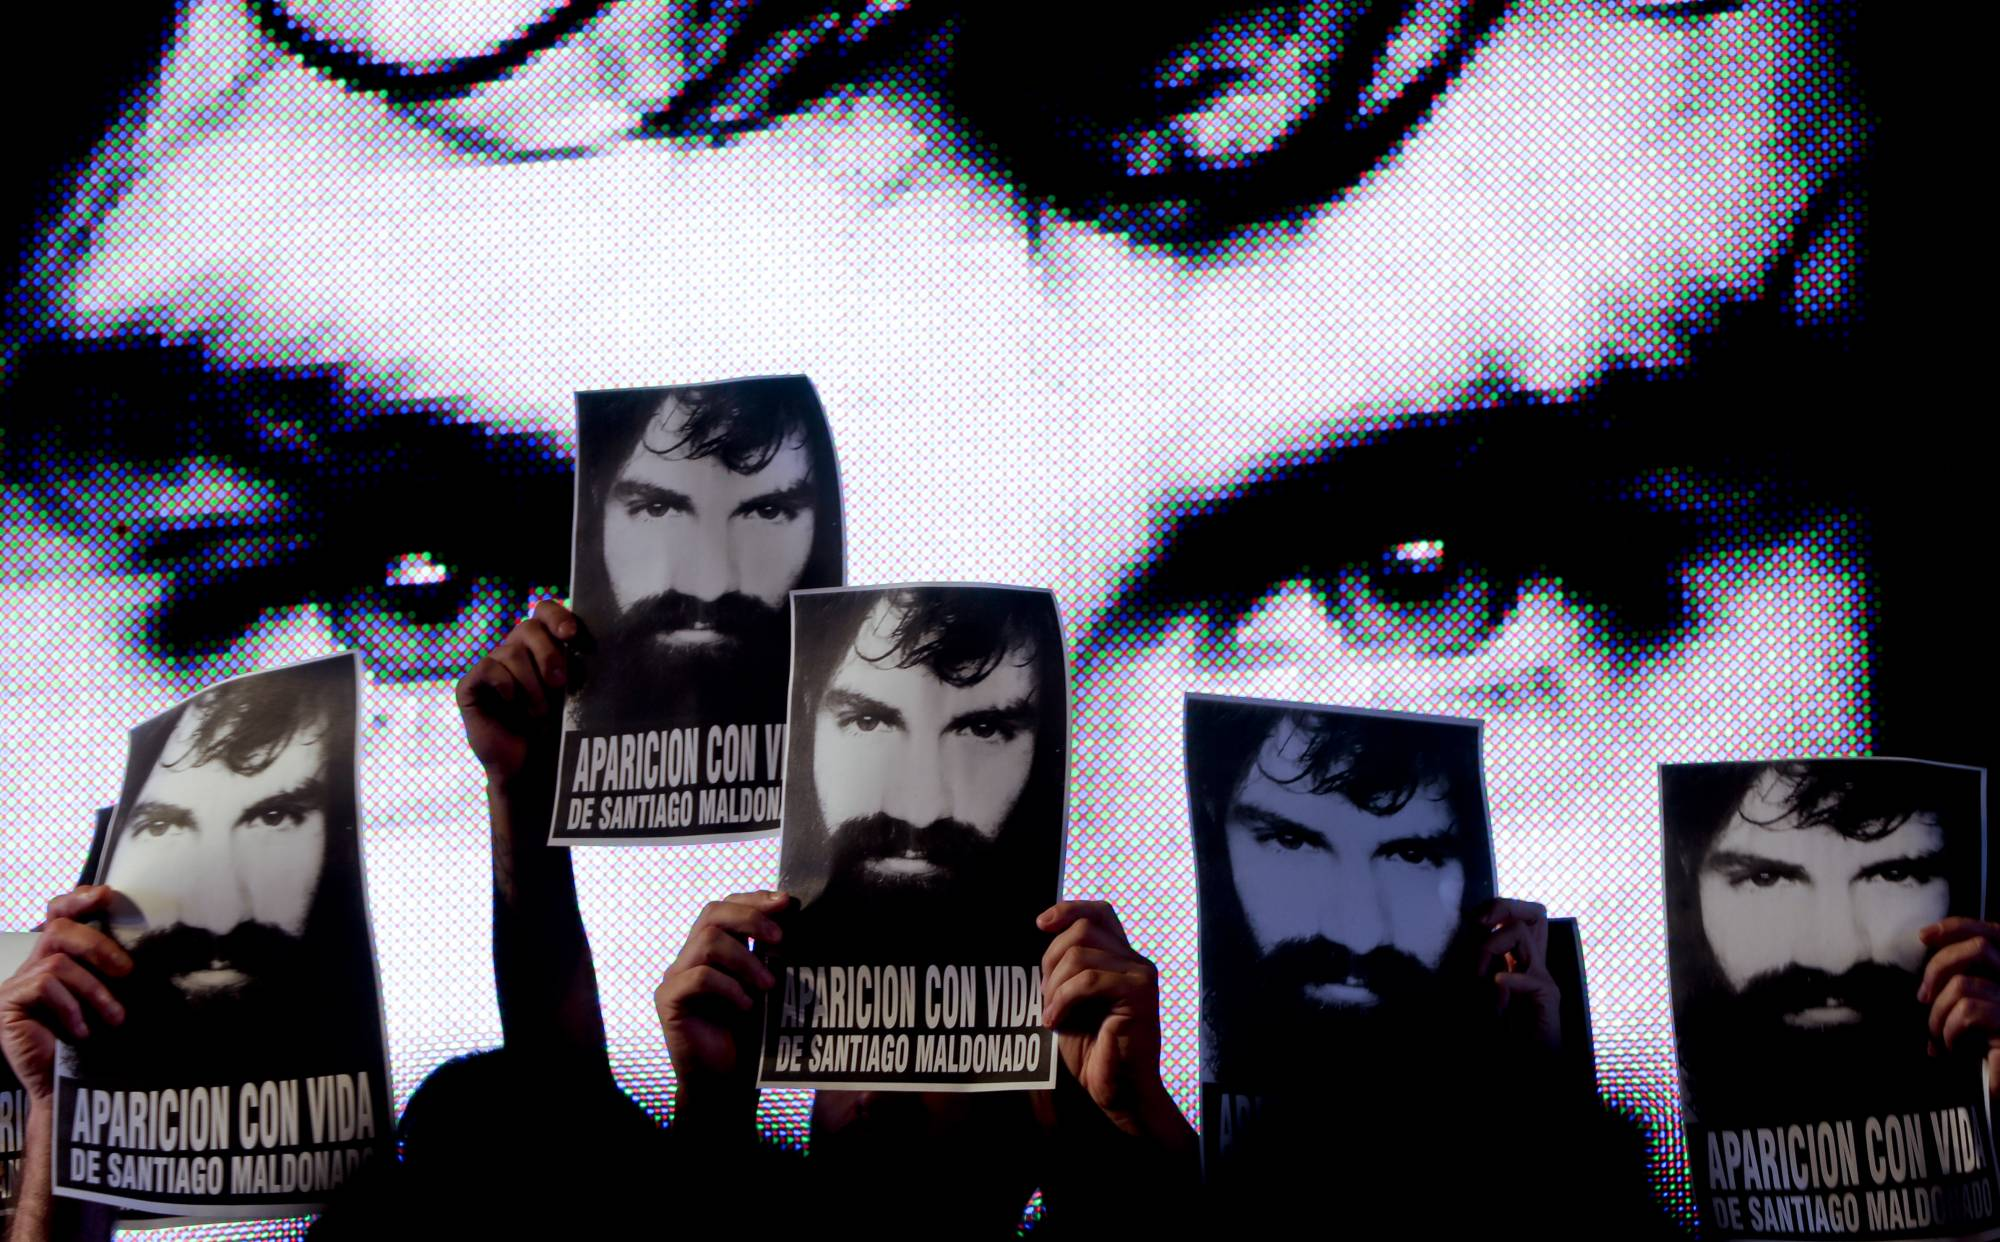 thenewstribune.com Family believes body is that of missing Argentine  protester 3d21e4b2b